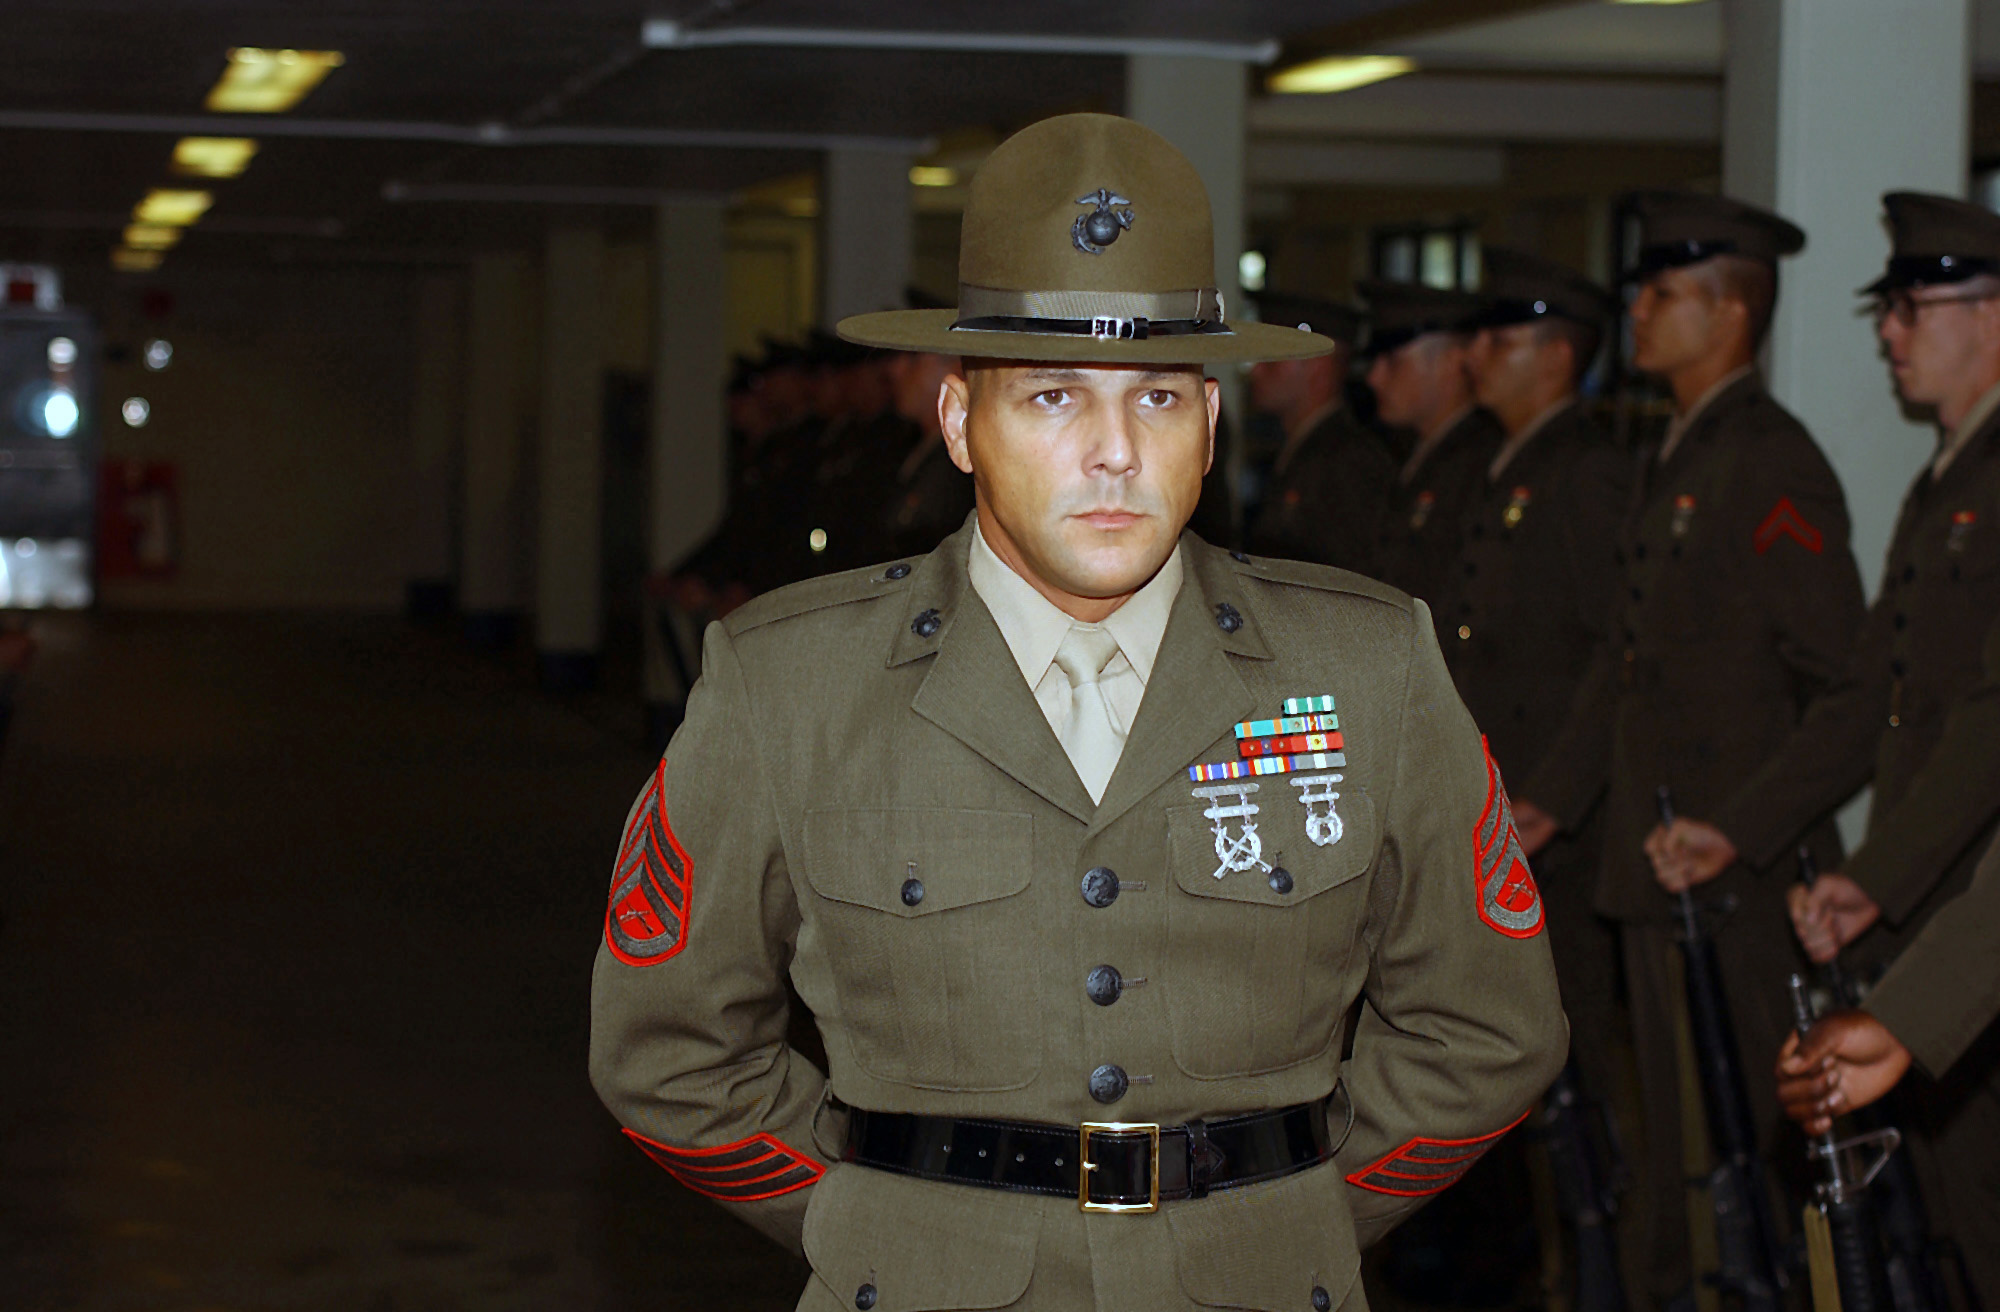 File Senior Drill Instructor Jpg Wikimedia Commons